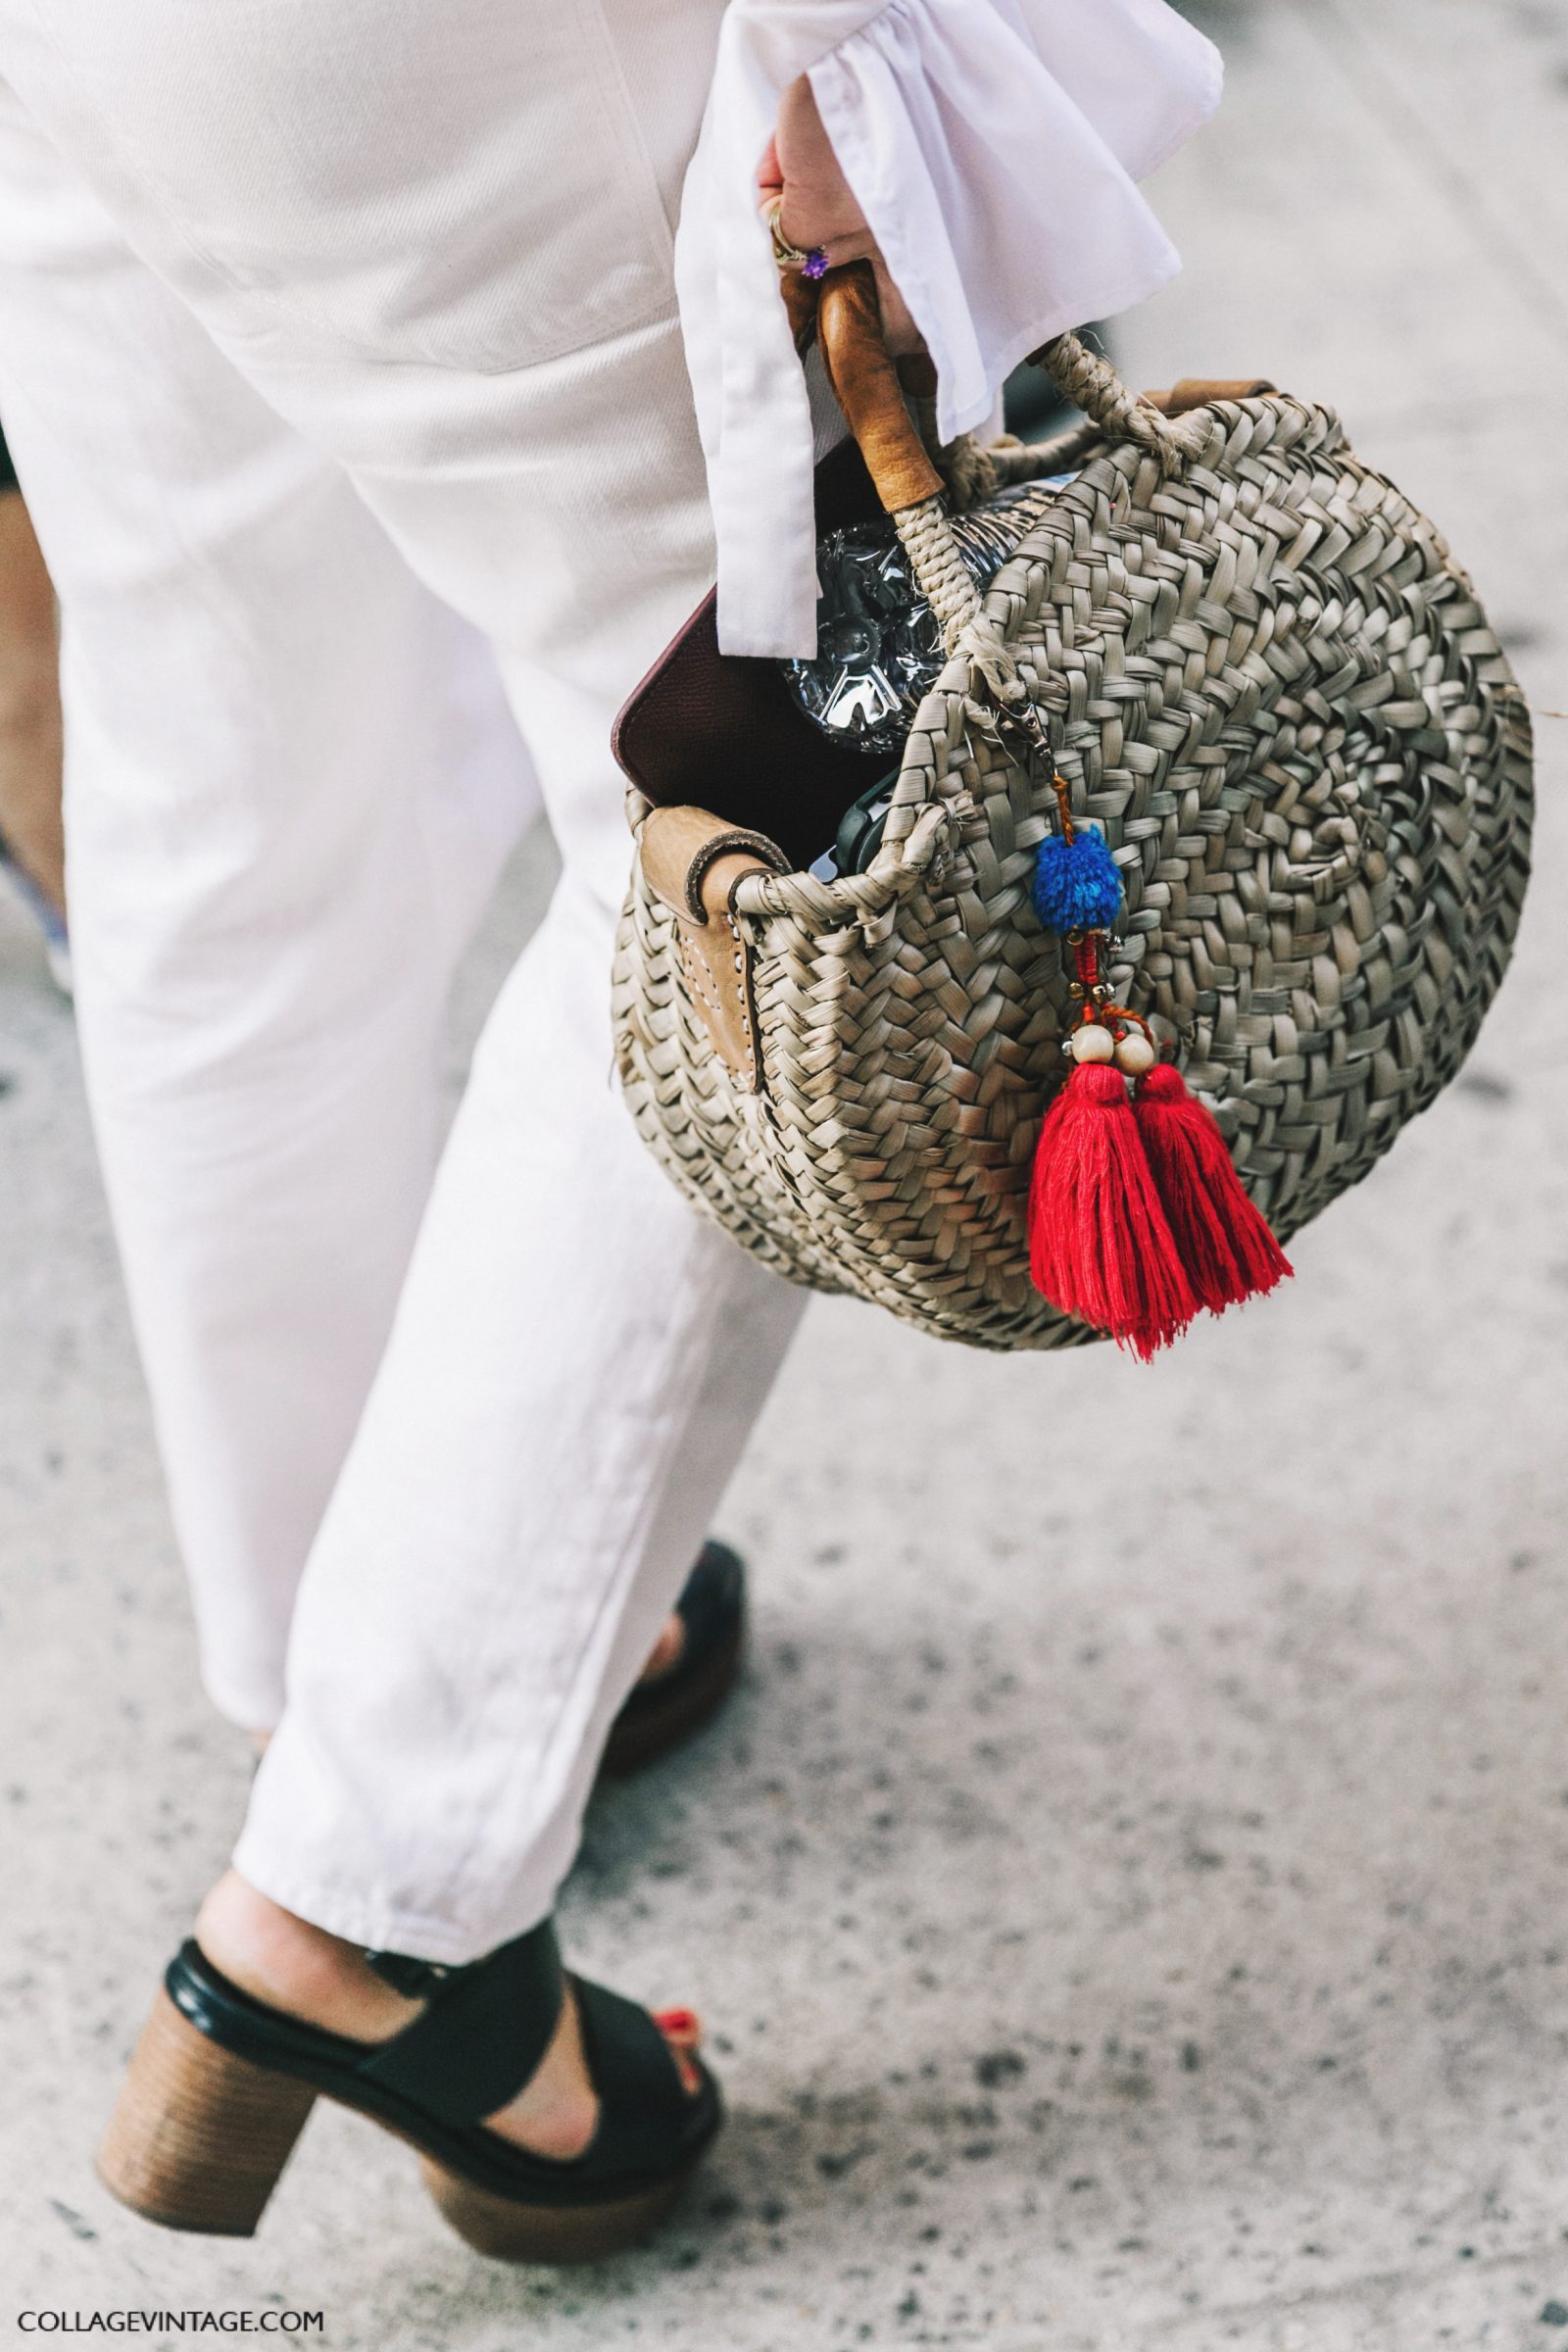 nyfw-new_york_fashion_week_ss17-street_style-outfits-collage_vintage-basket